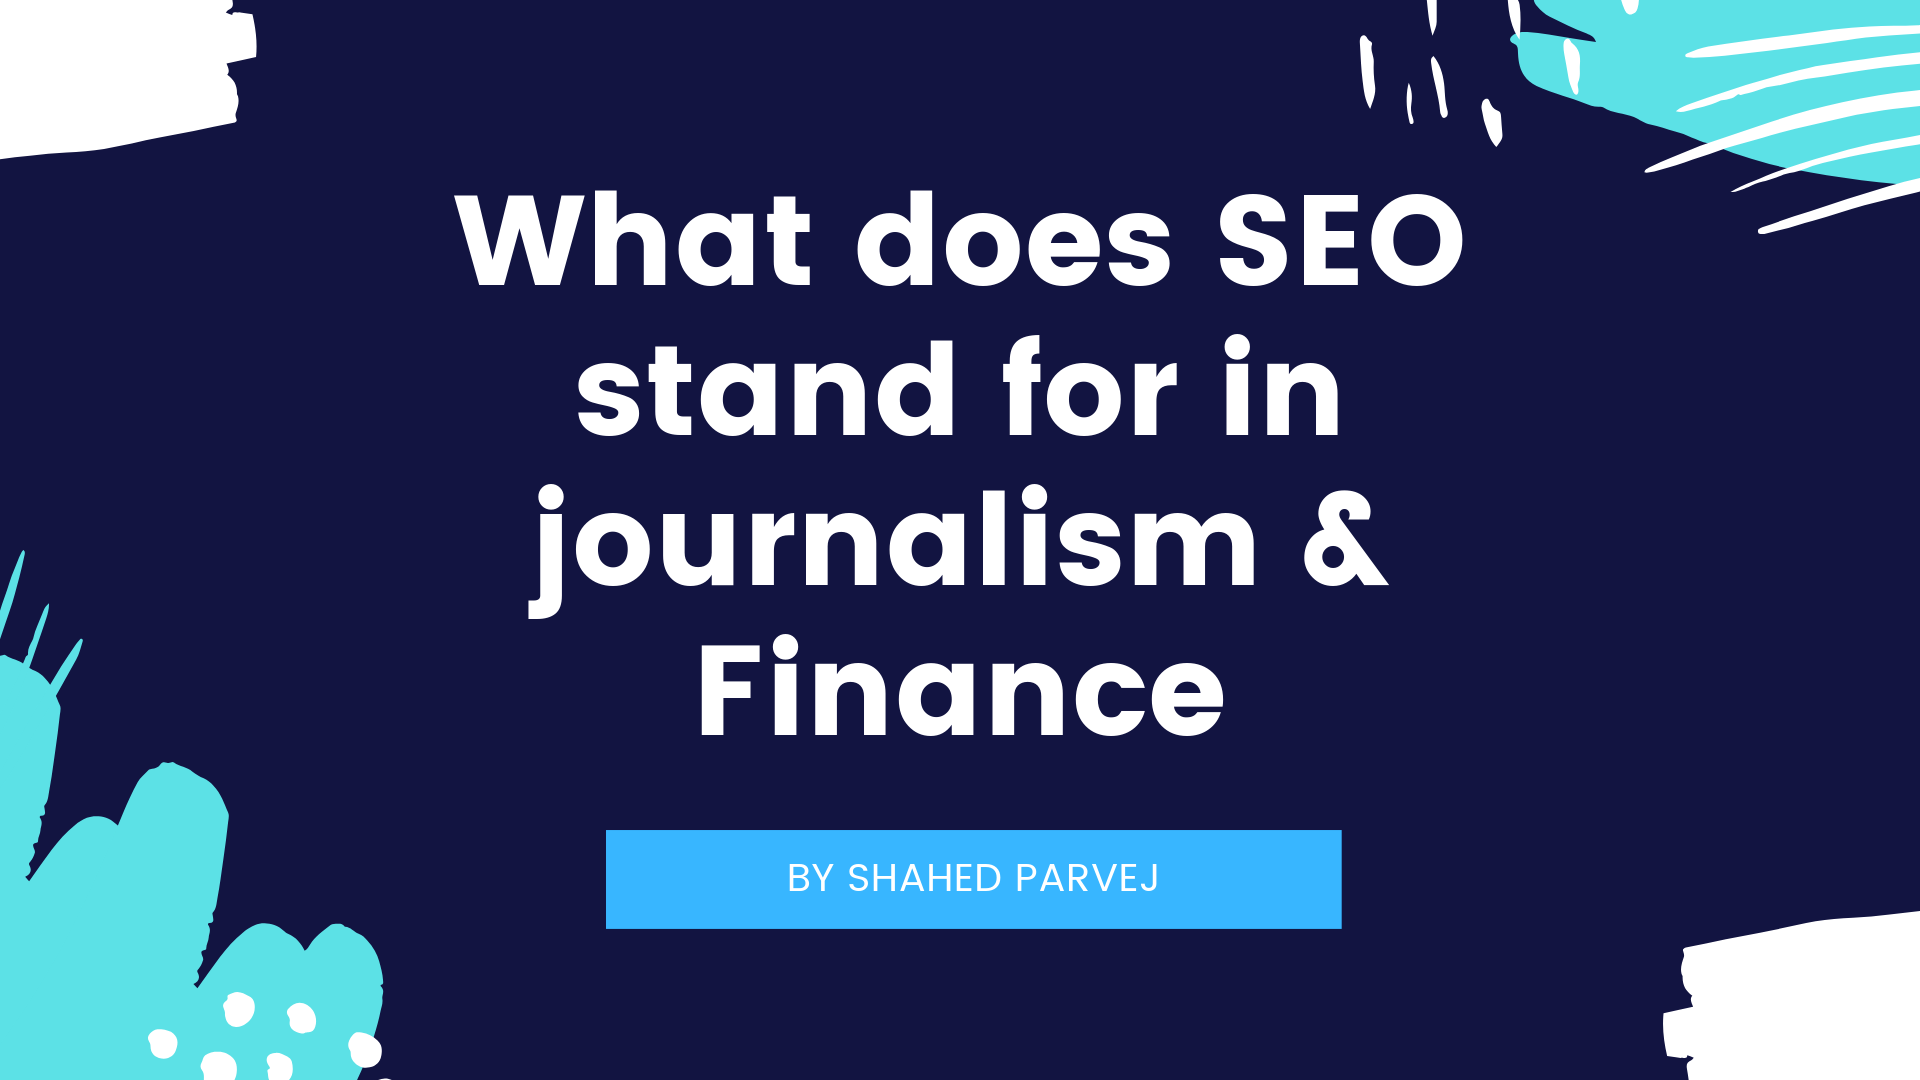 What does SEO stand for in journalism